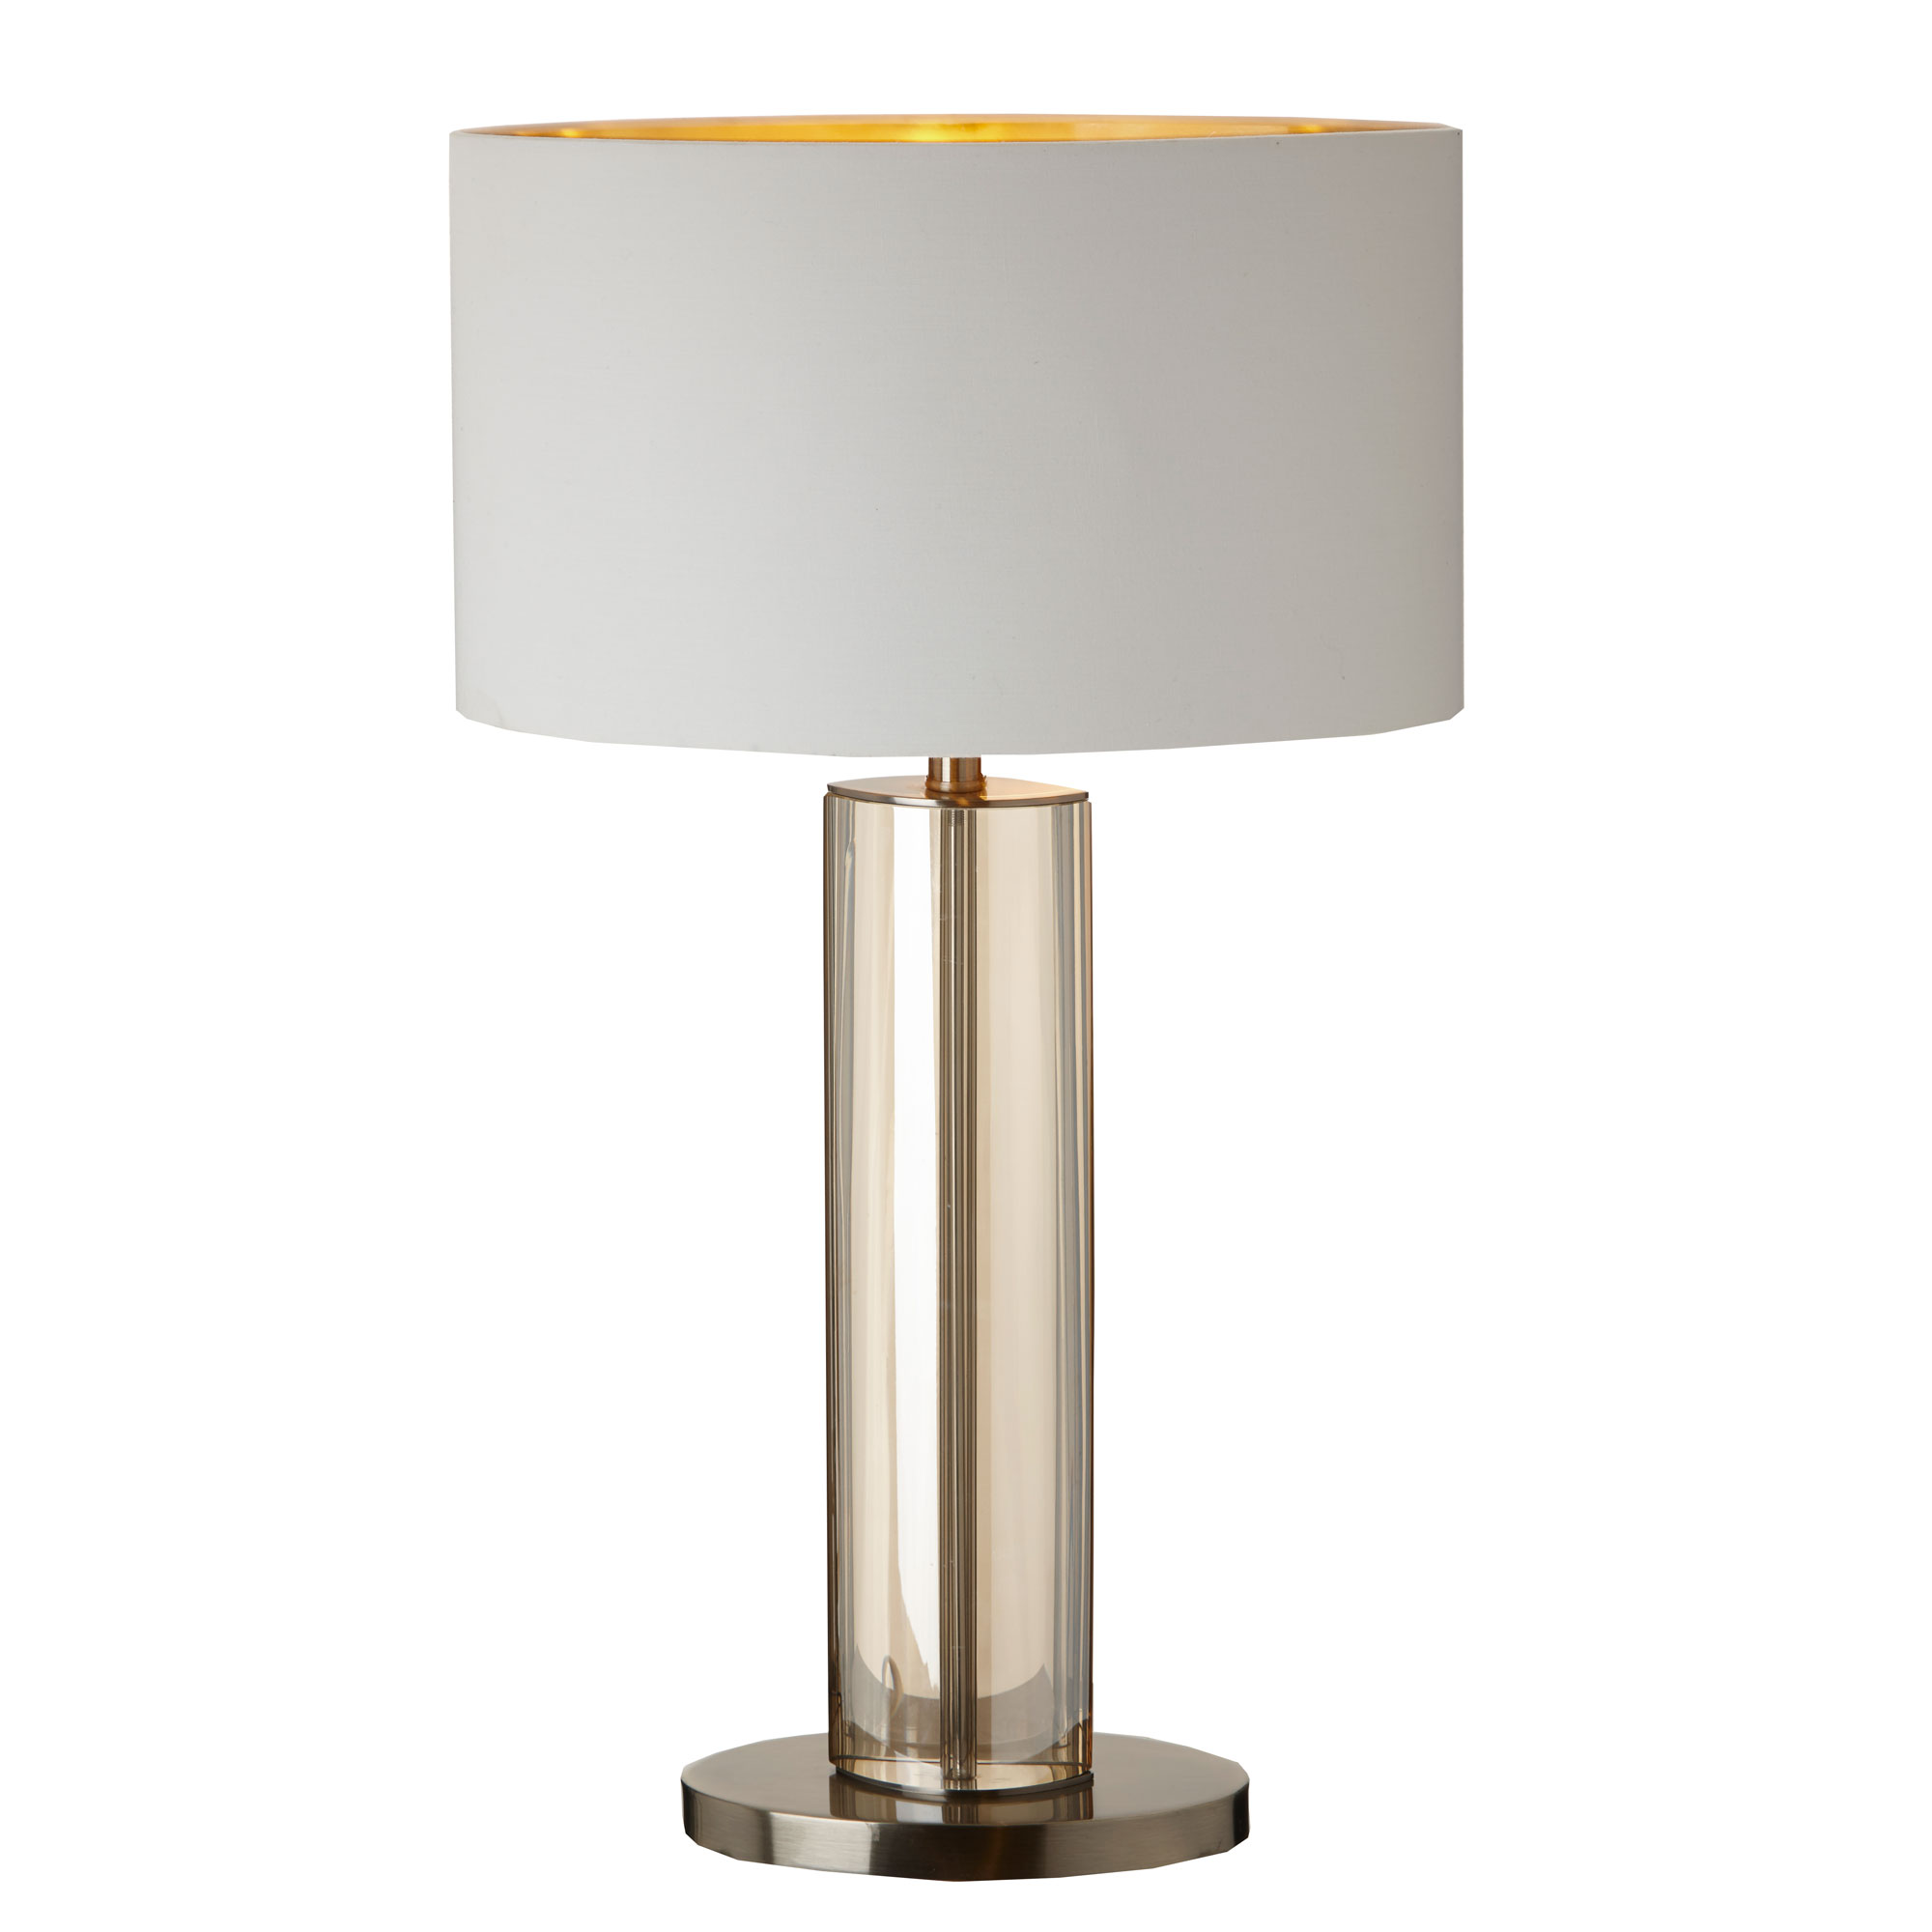 Lisle Table Lamp cognac crystal and antique brass table lamp